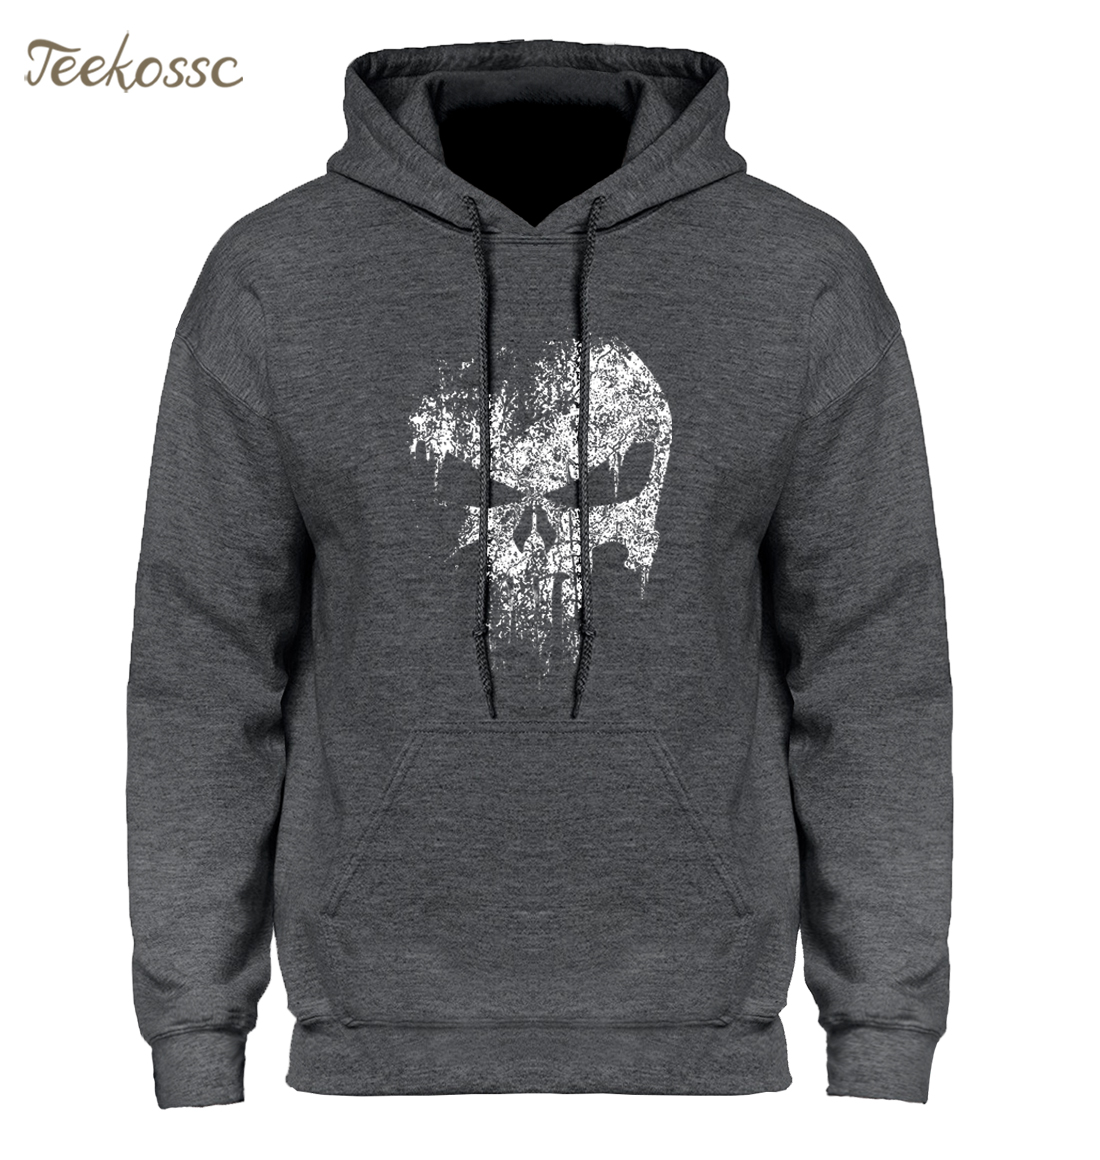 Skull Print Super Hero Hoodie Hoodies Sweatshirt Men 2018 New Brand Winter Autumn Hooded Hoody Hip Hop Streetwear